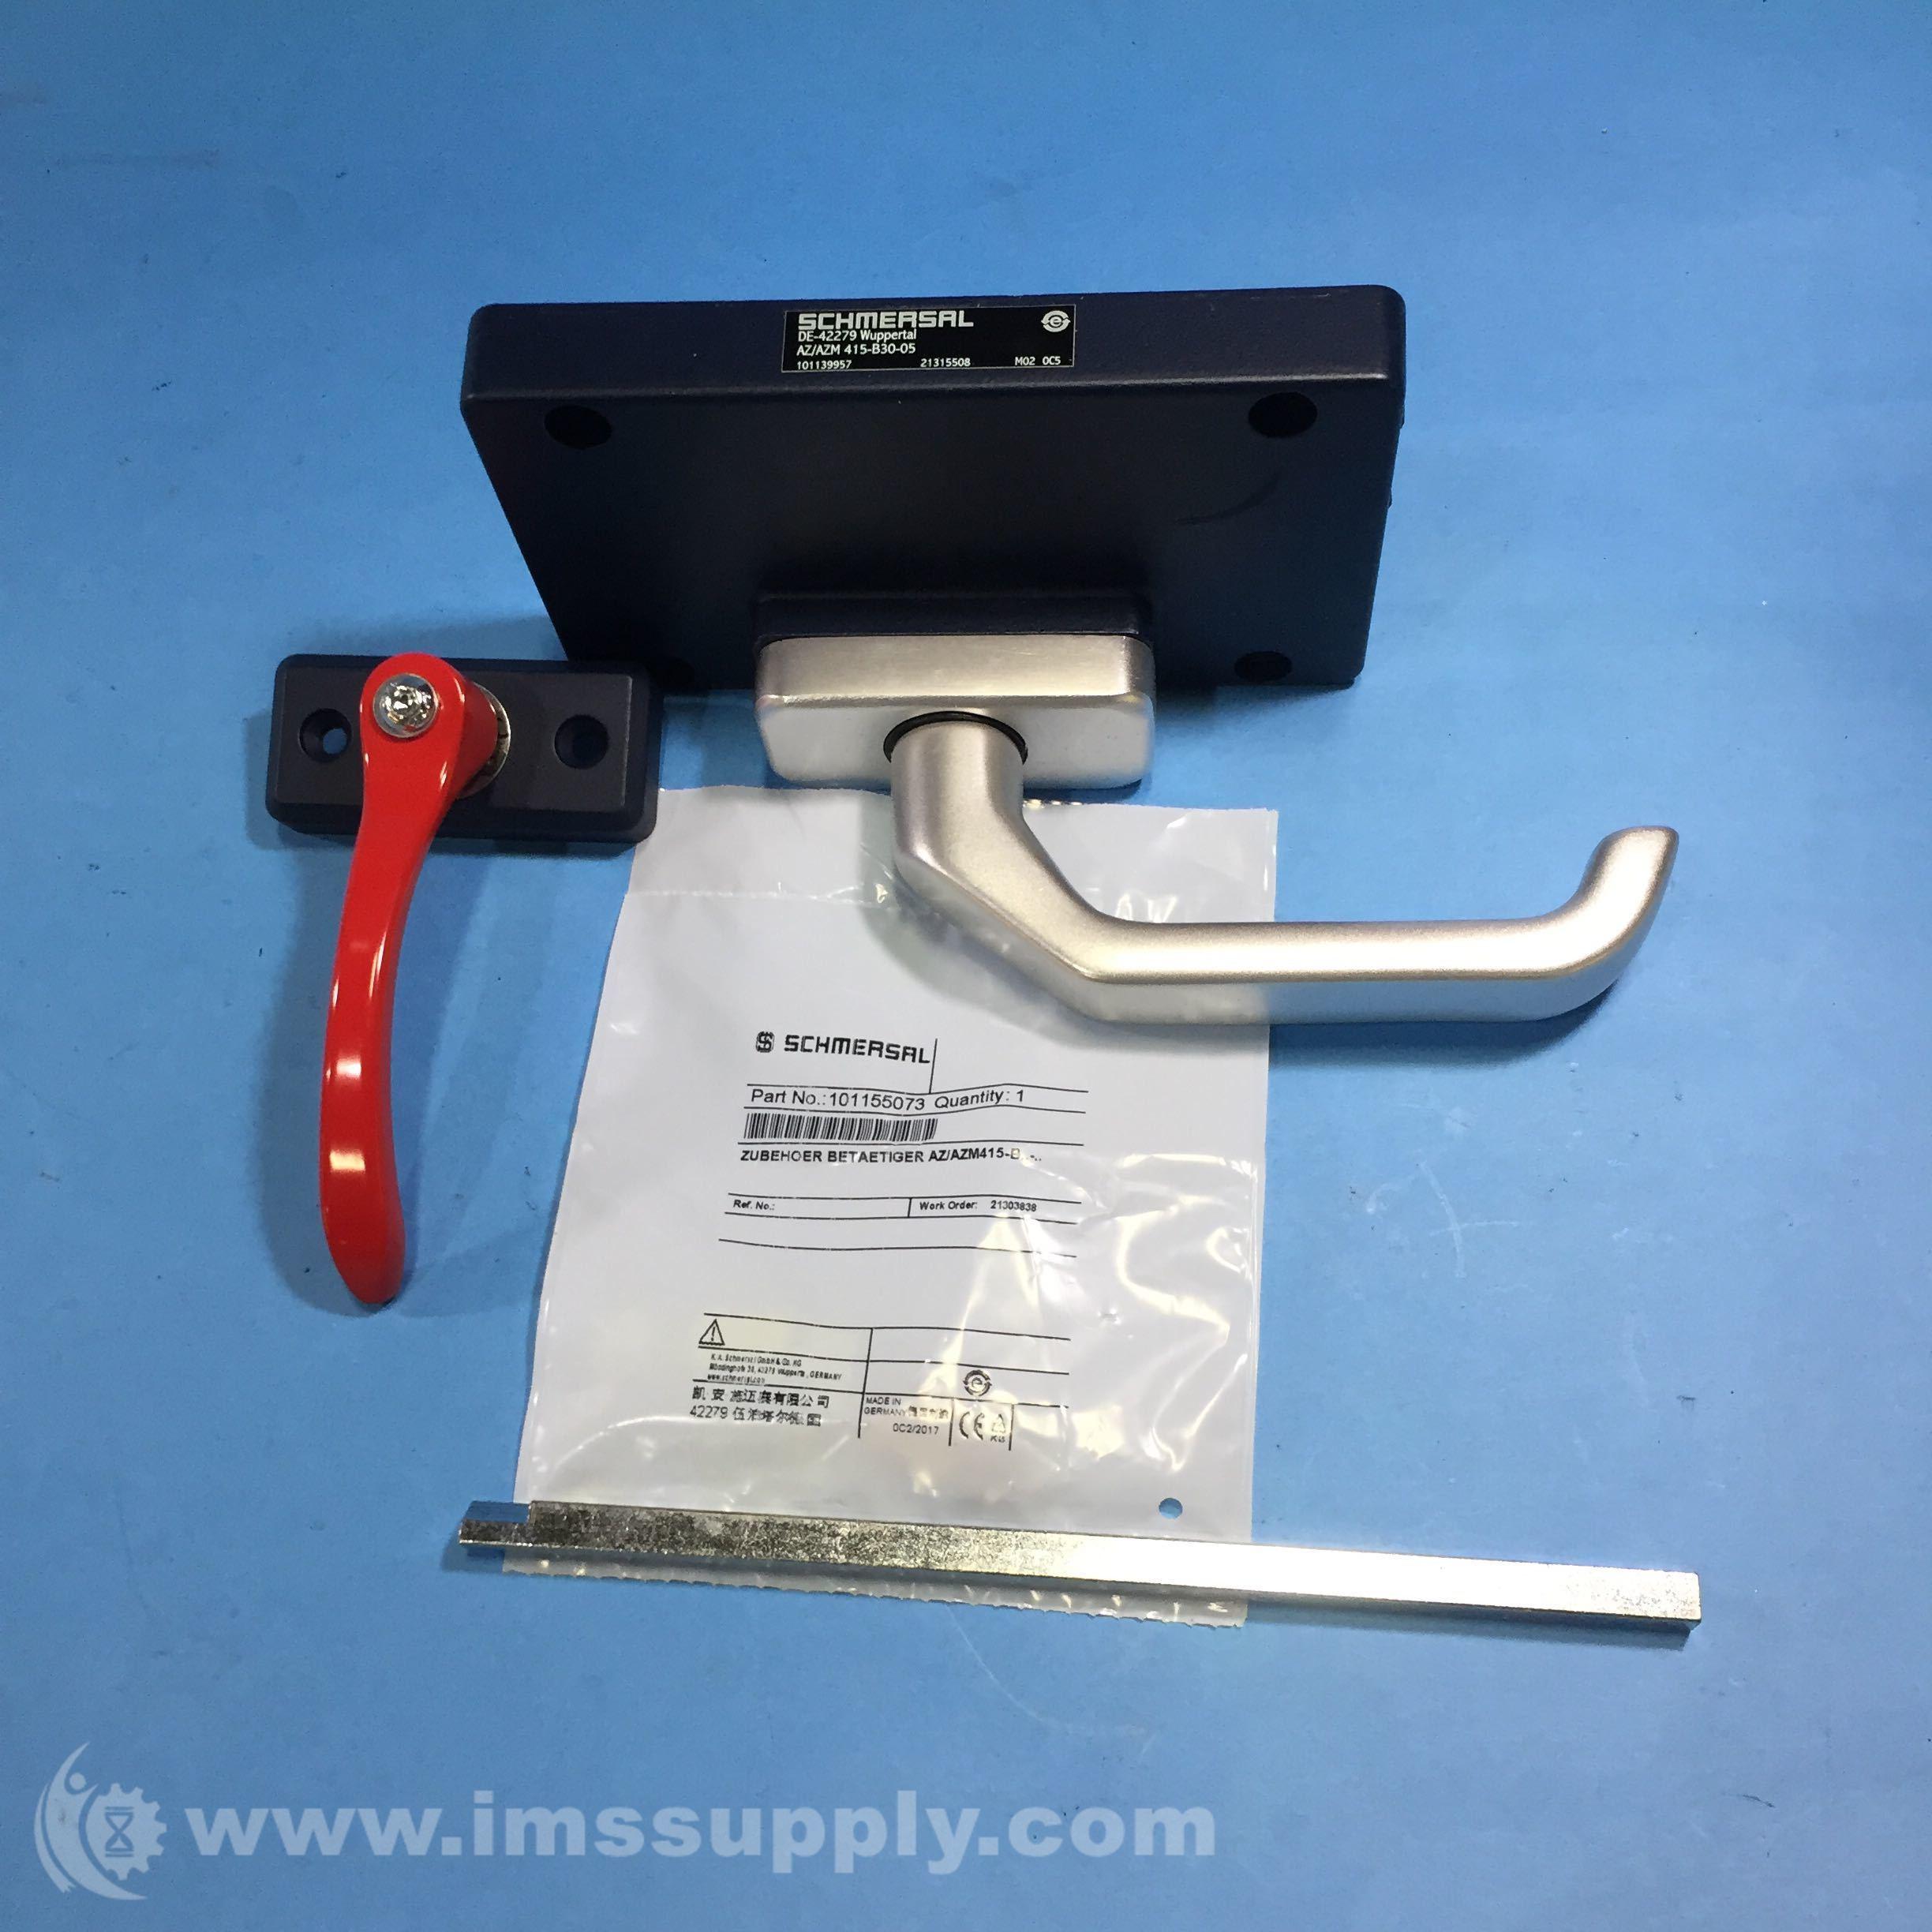 Schmersal 101139957 Actuator And Emergency Exit Handle Kit